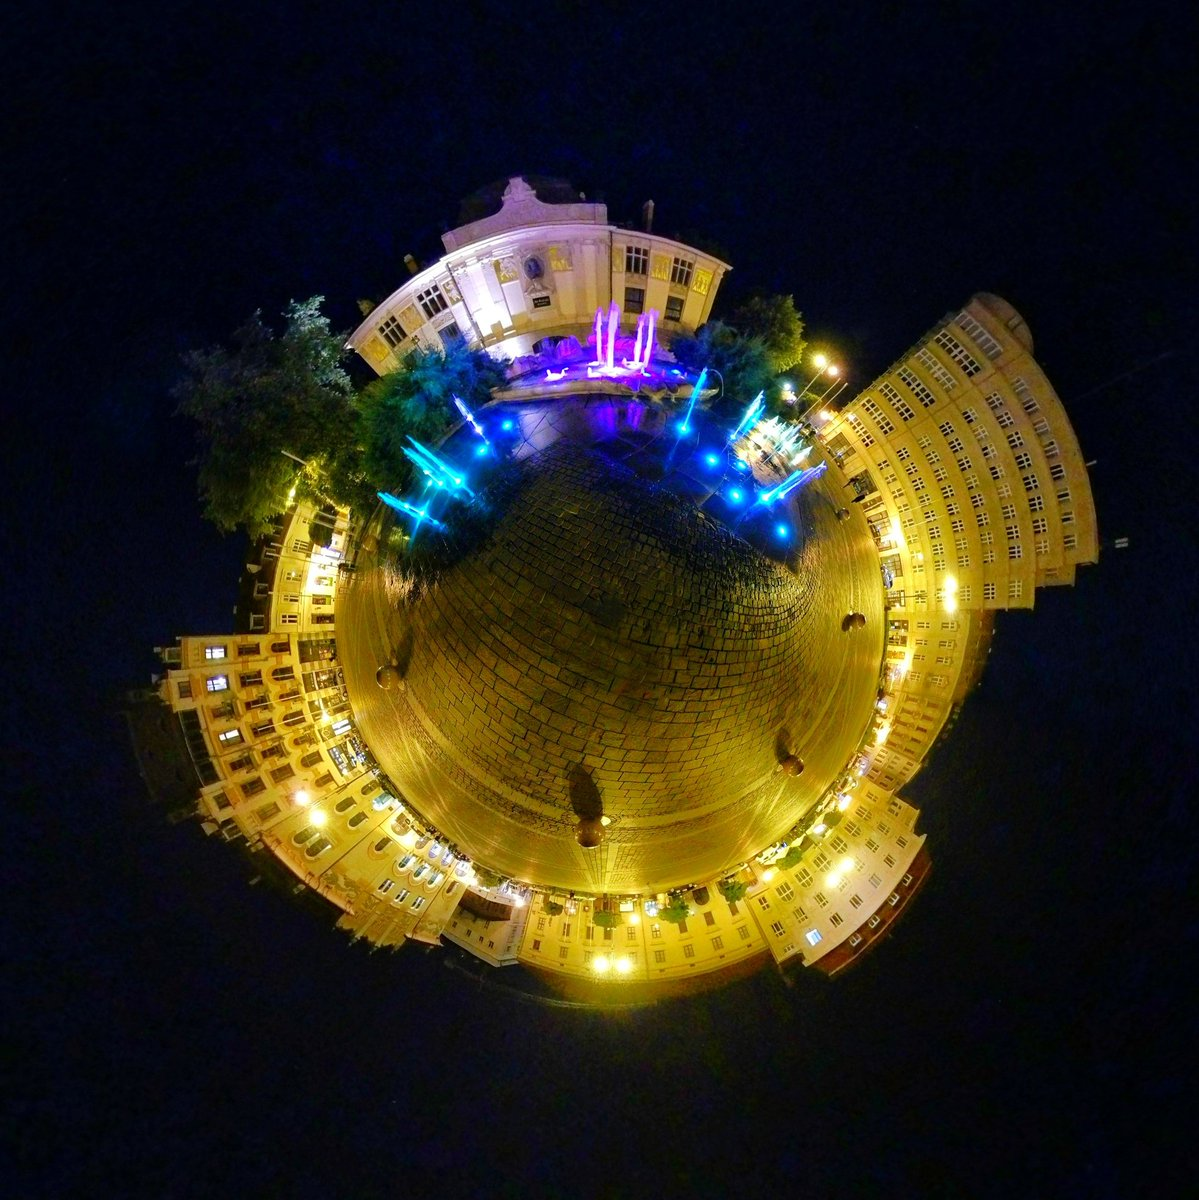 Night view at Plac Szczepafiski, Krakow   #photooftheday #photos  #krakowpoland #krakow #travelling  #travelphotography #travelgram #nightphotography #night  #beauty #poland #instacool #tinyplanet #liqhtinq #fountain #picoftheday #outdoor